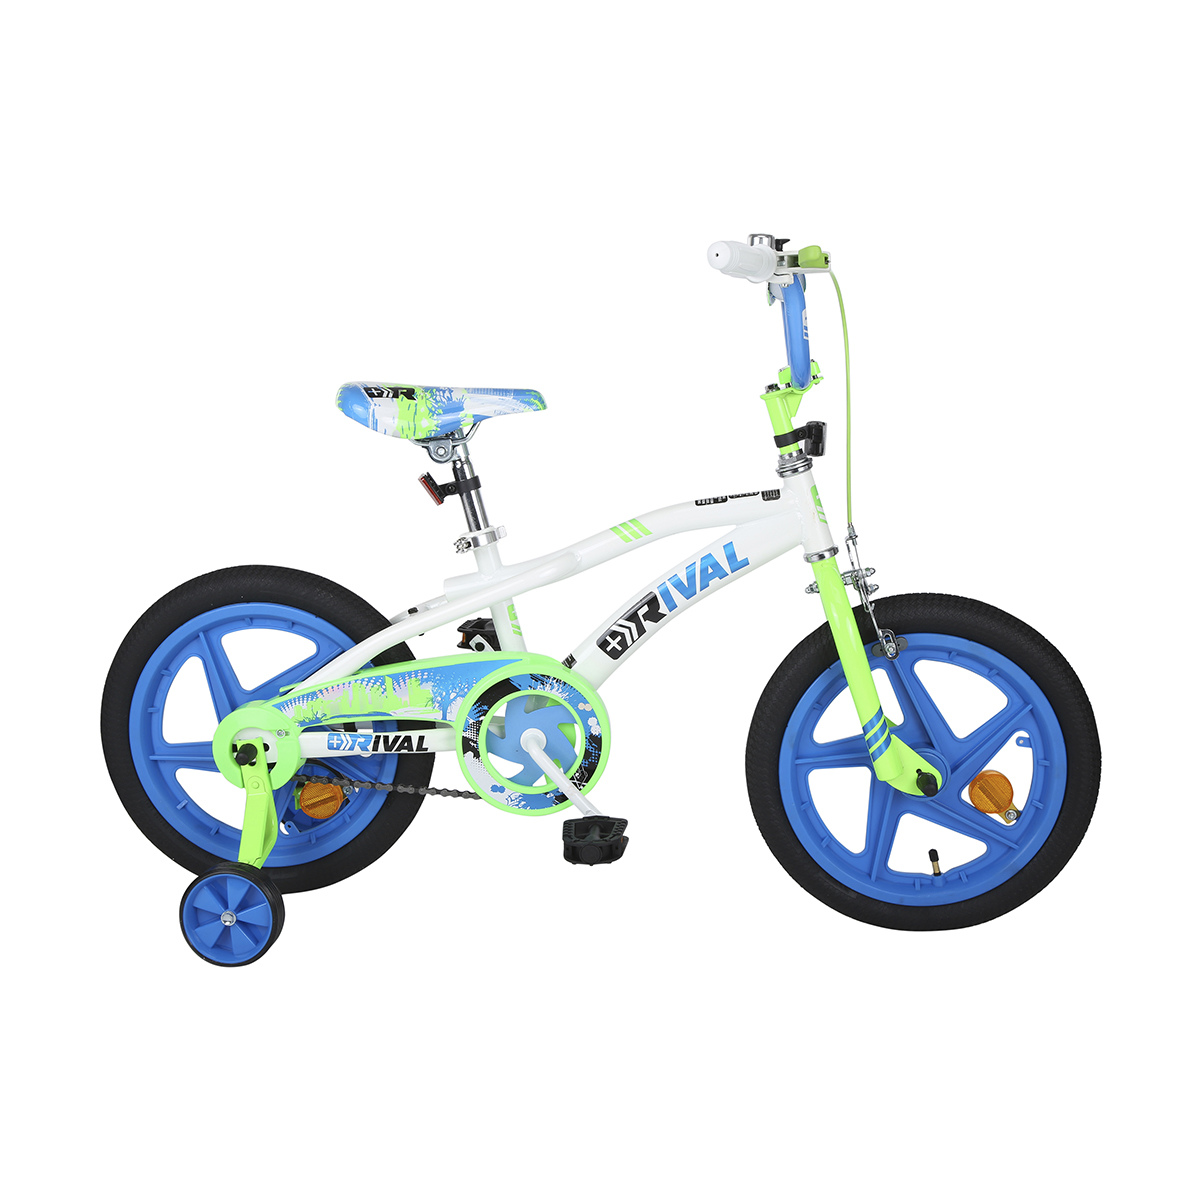 Types of Kids Bikes